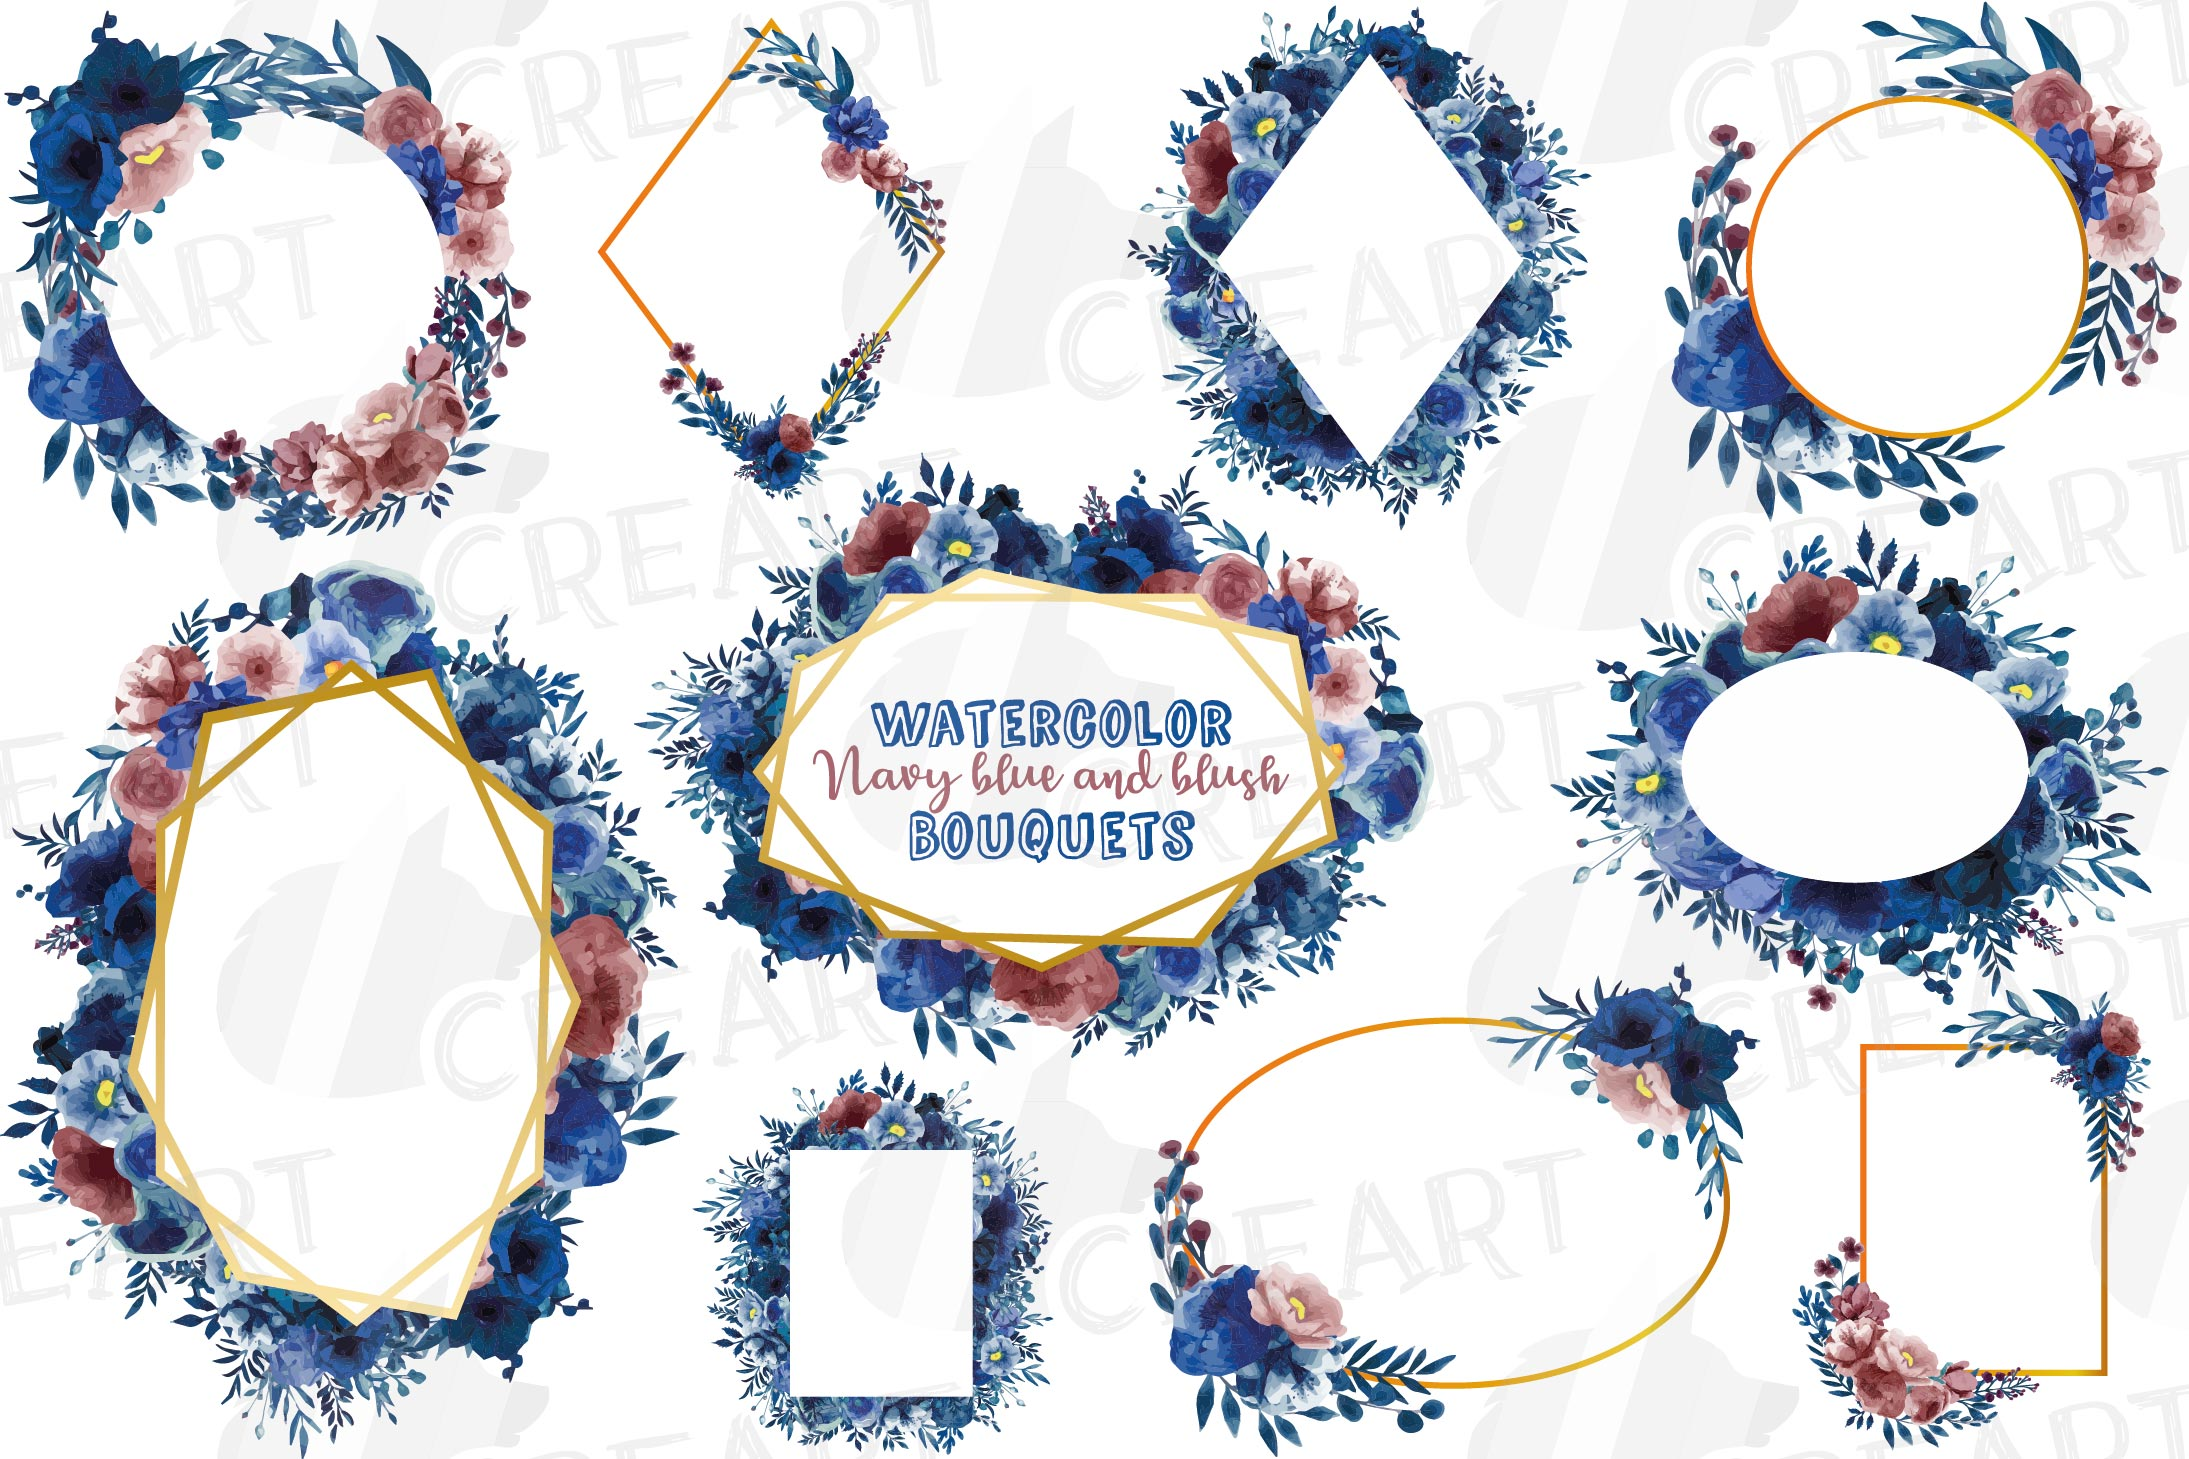 Watercolor elegant navy blue and blush floral borders vector example image 2